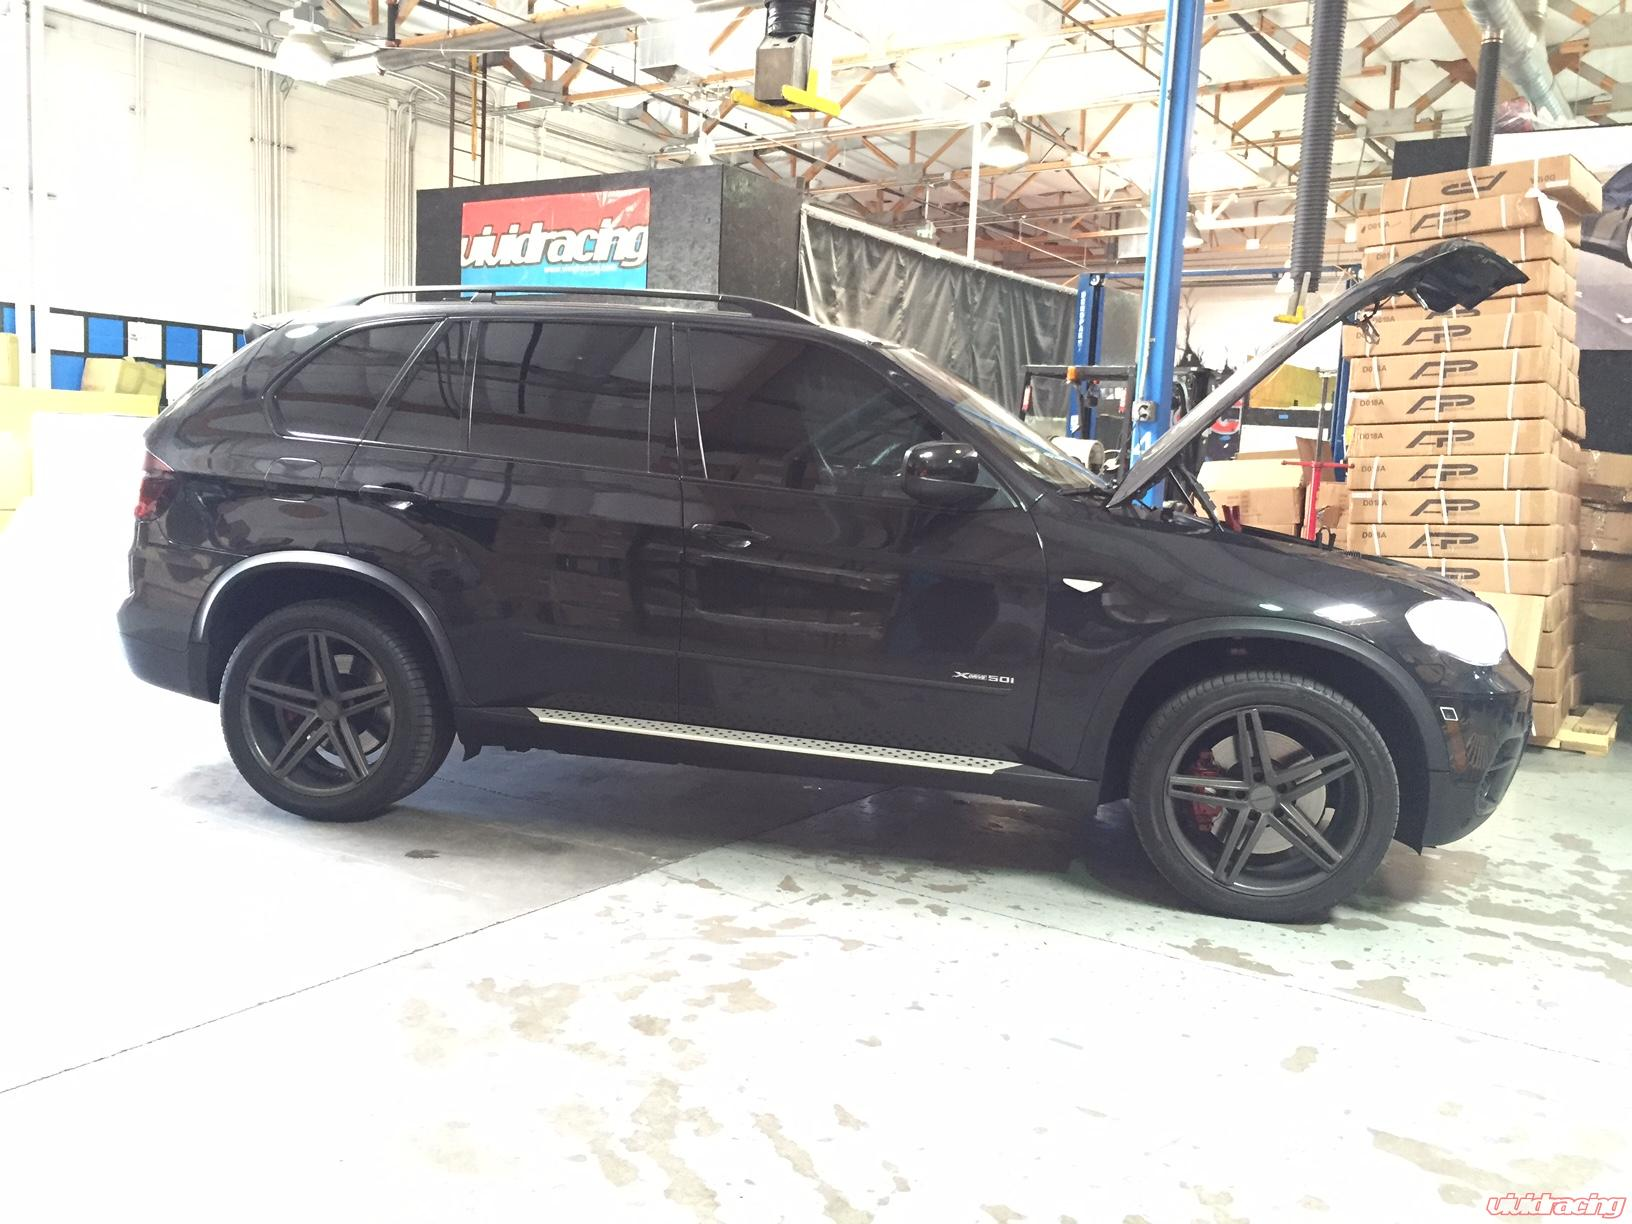 vr tuned ecu flash tune bmw x5 xdrive50i e70 n63 11 13. Black Bedroom Furniture Sets. Home Design Ideas